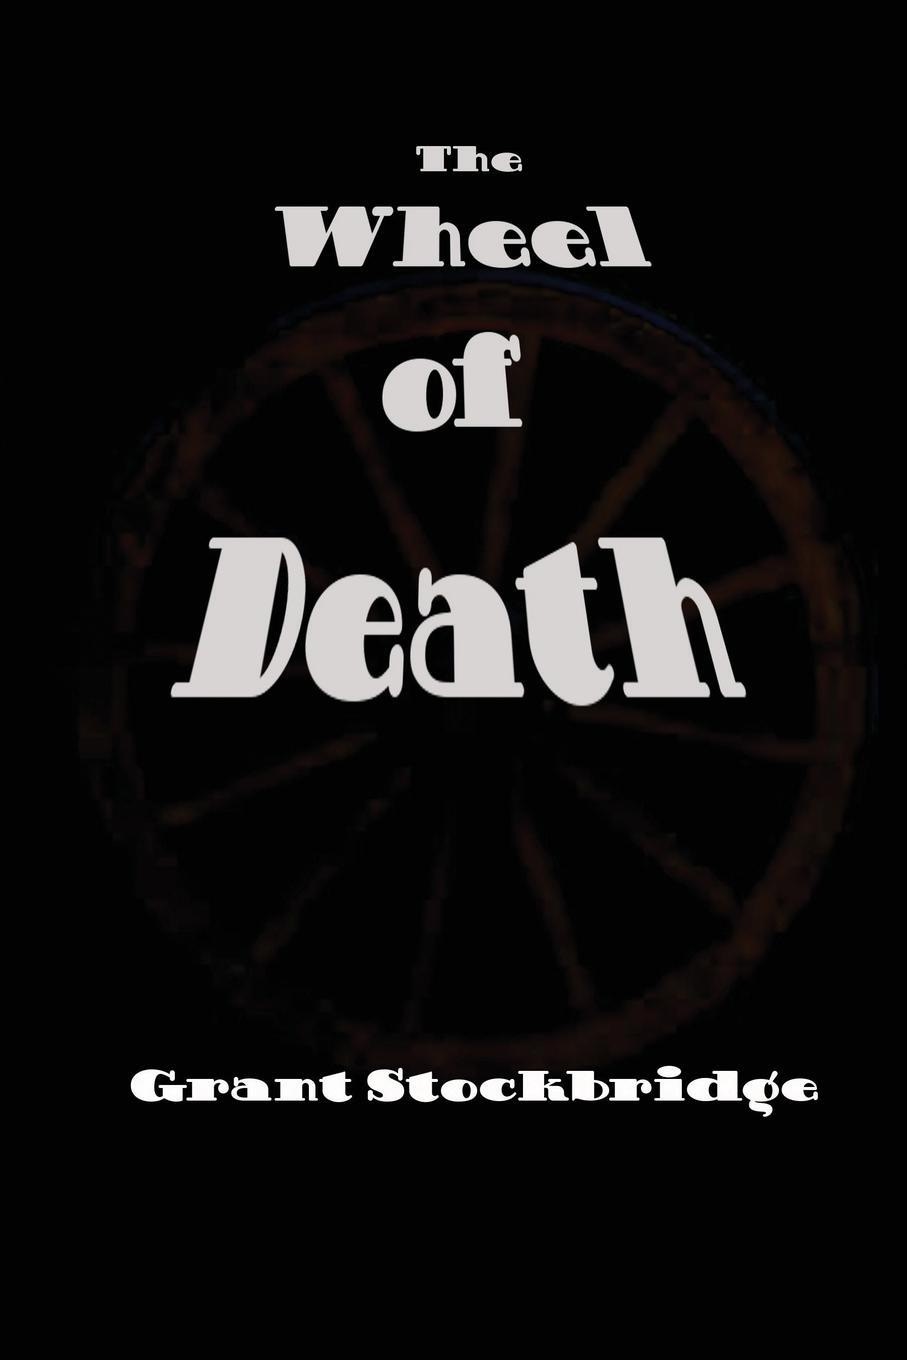 The Wheel of Death